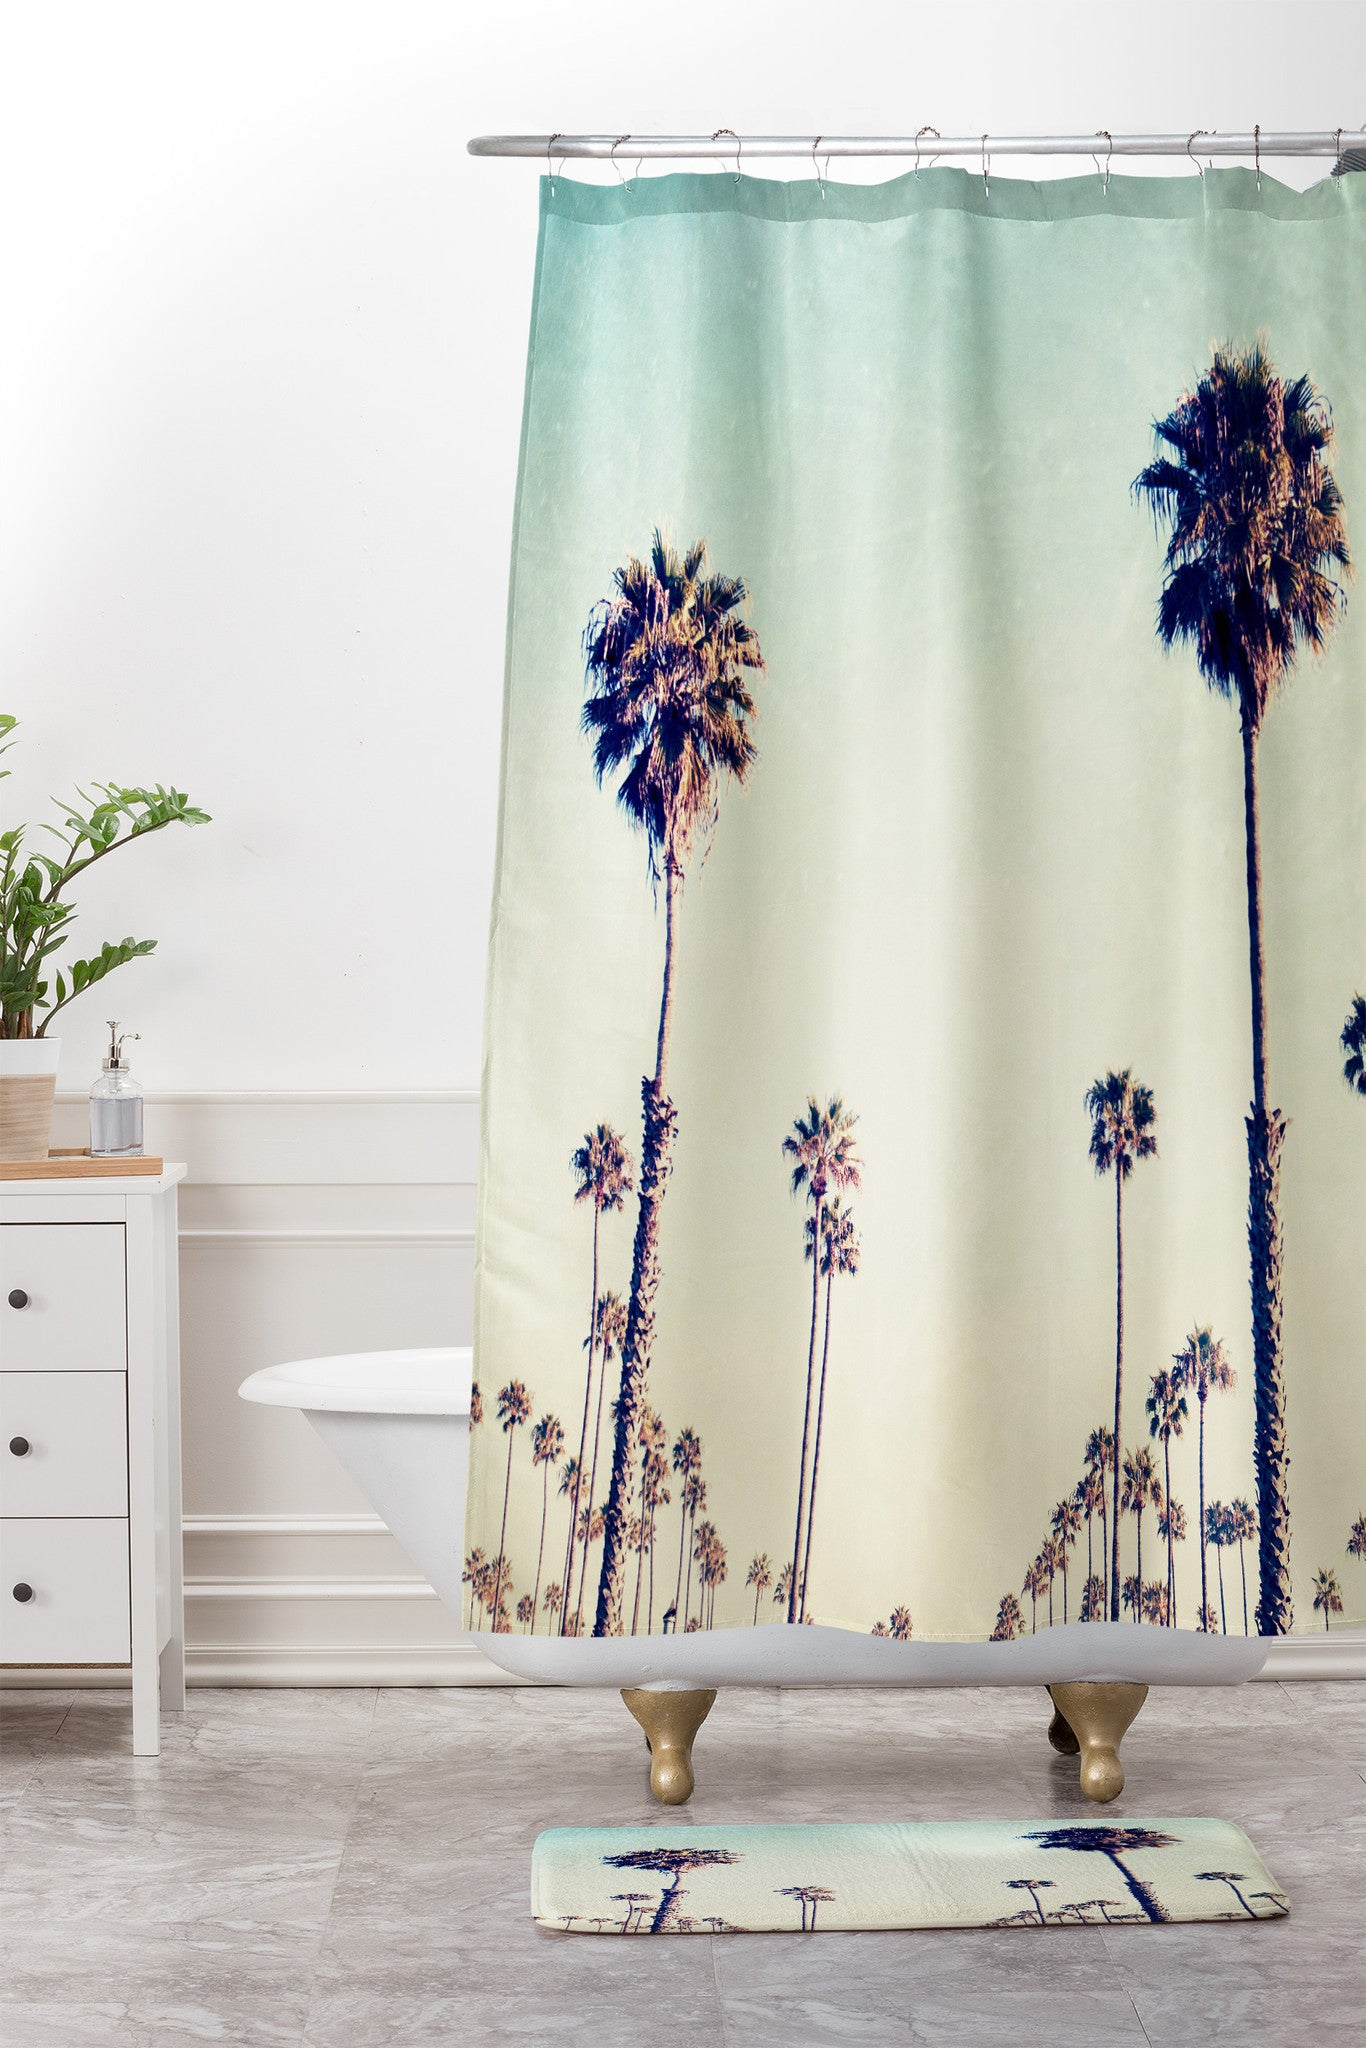 Charmant Bree Madden California Palm Trees Shower Curtain And Mat